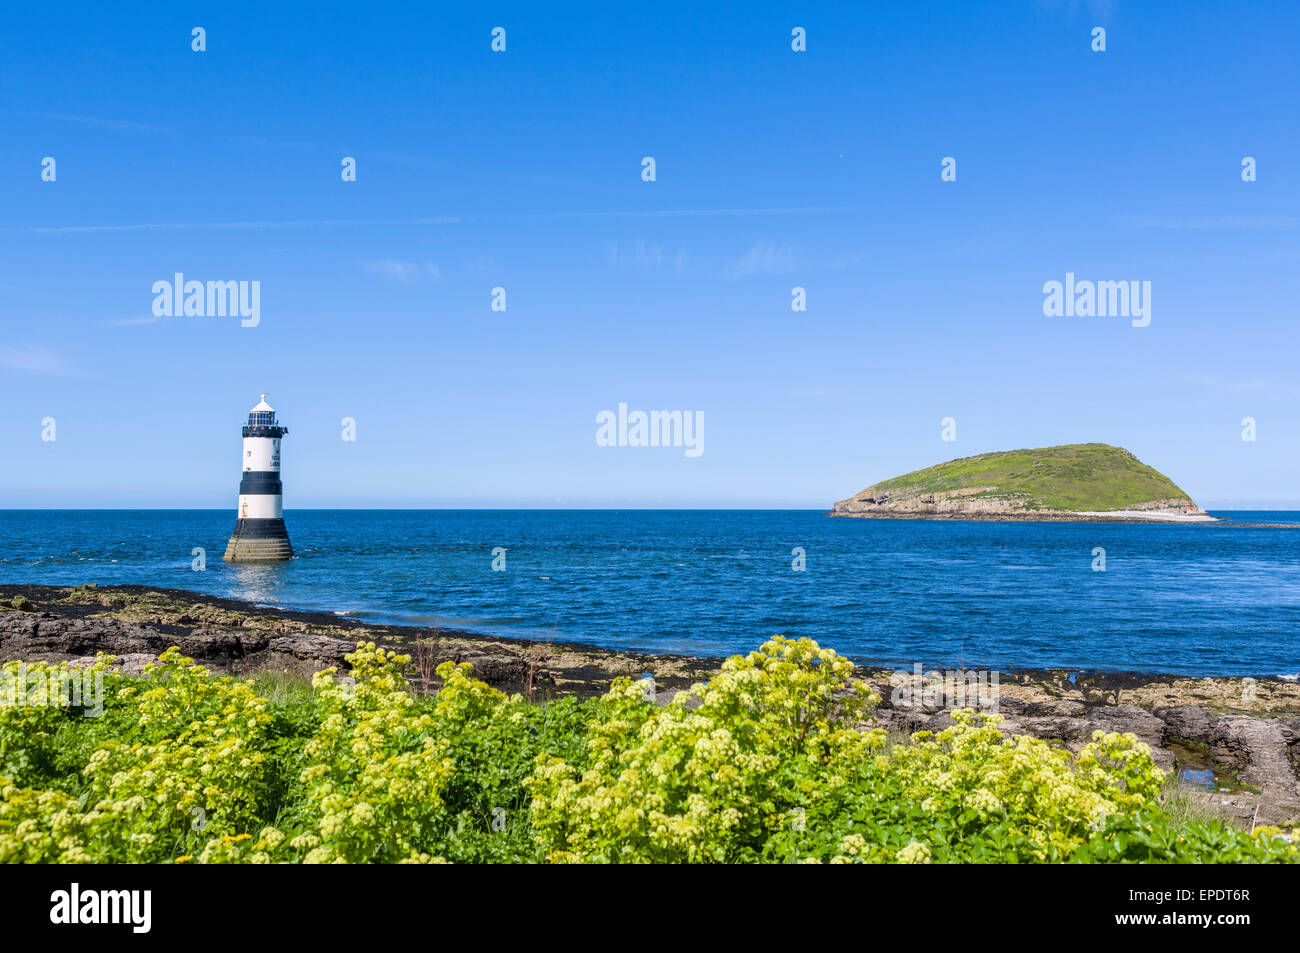 Lighthouse and Puffin Island from Penmon Point,  Anglesey, Wales, UK - Stock Image